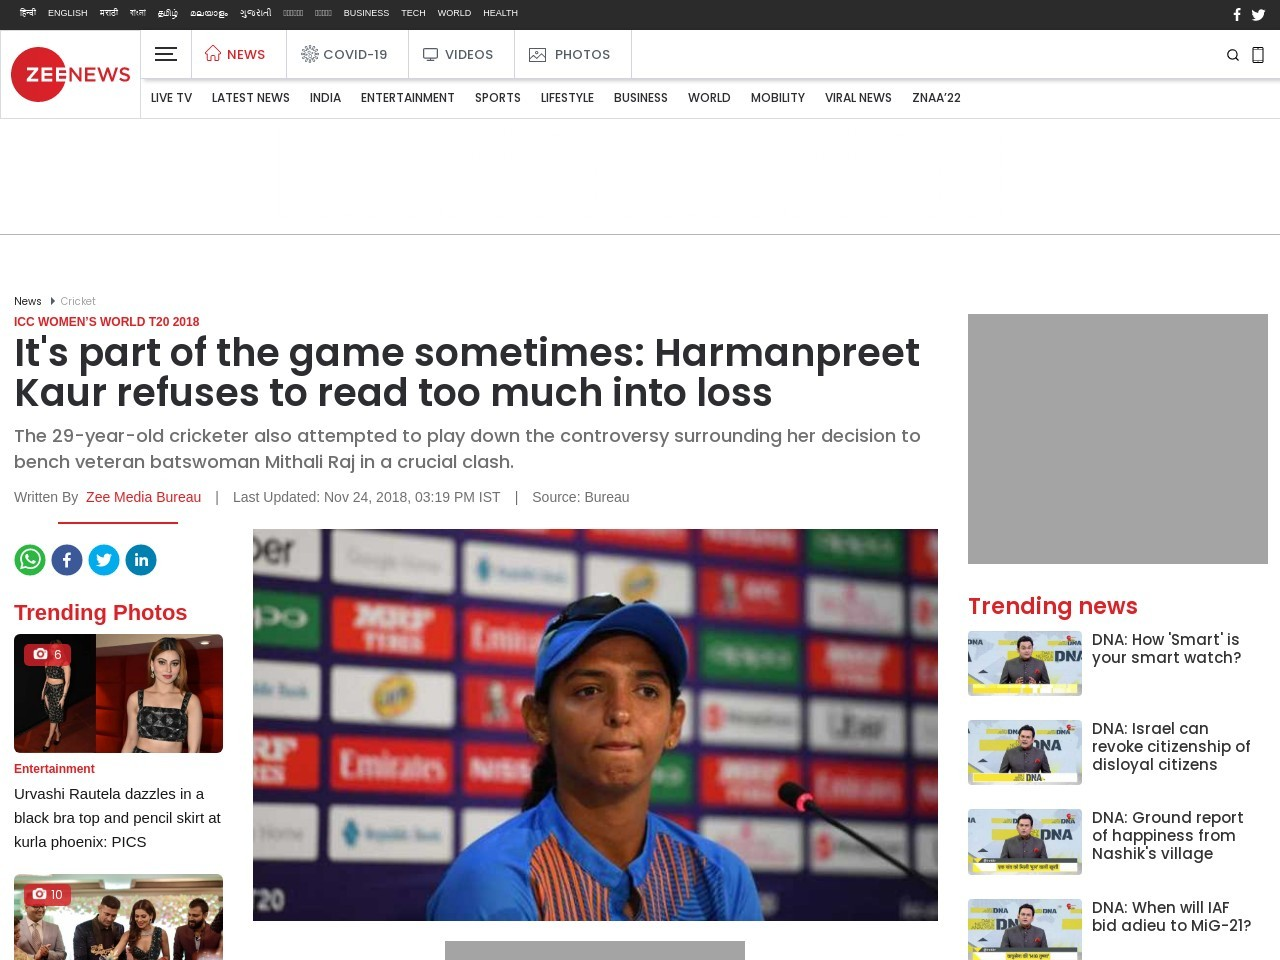 It's part of the game sometimes: Harmanpreet Kaur refuses to read too much into loss